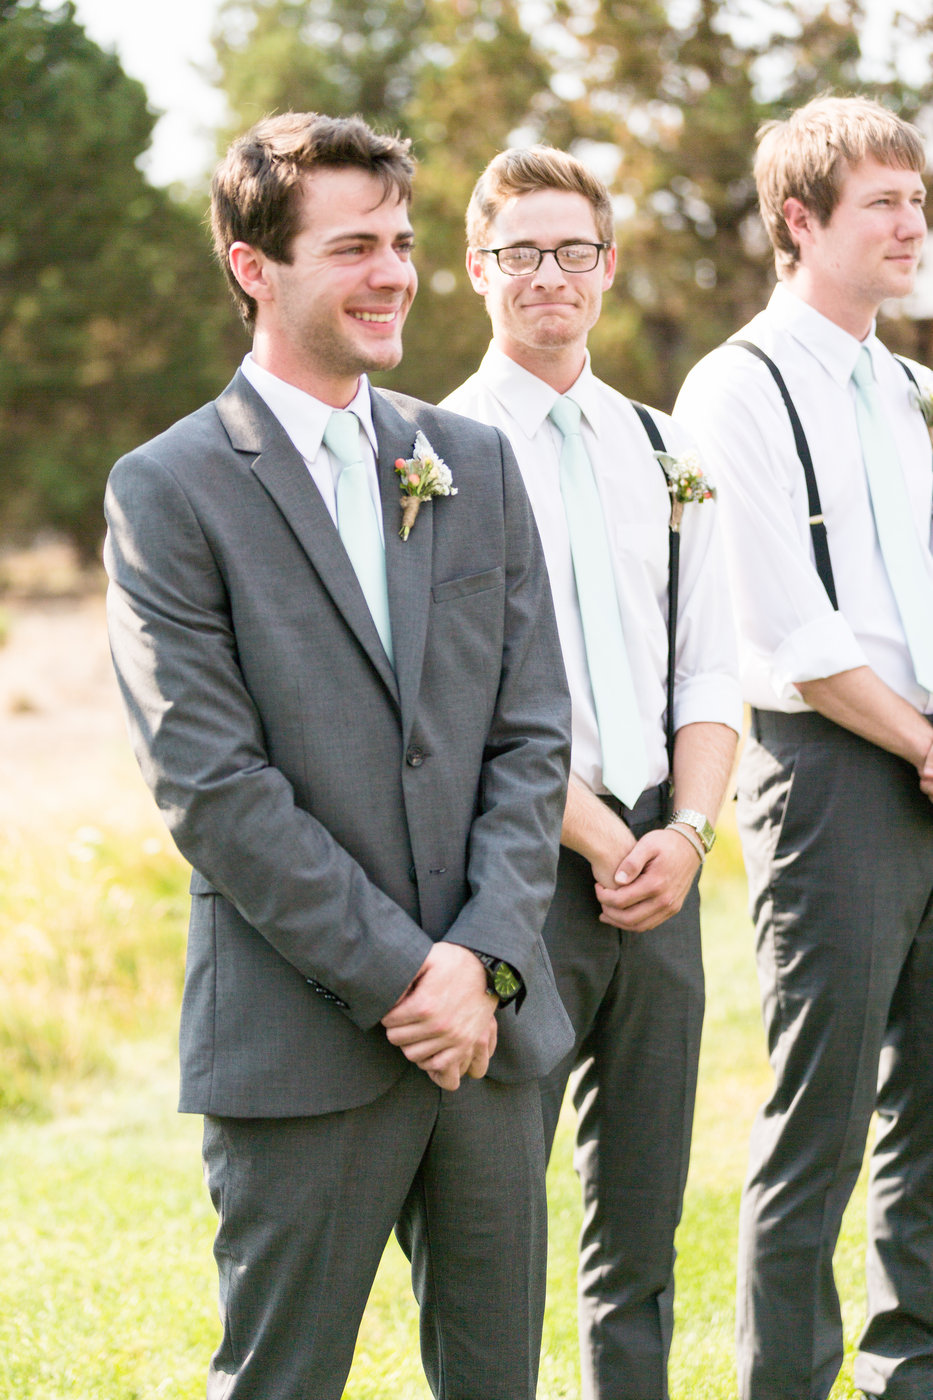 grooms-reaction-to-seeing-his-bride-on-wedding-dayjpg